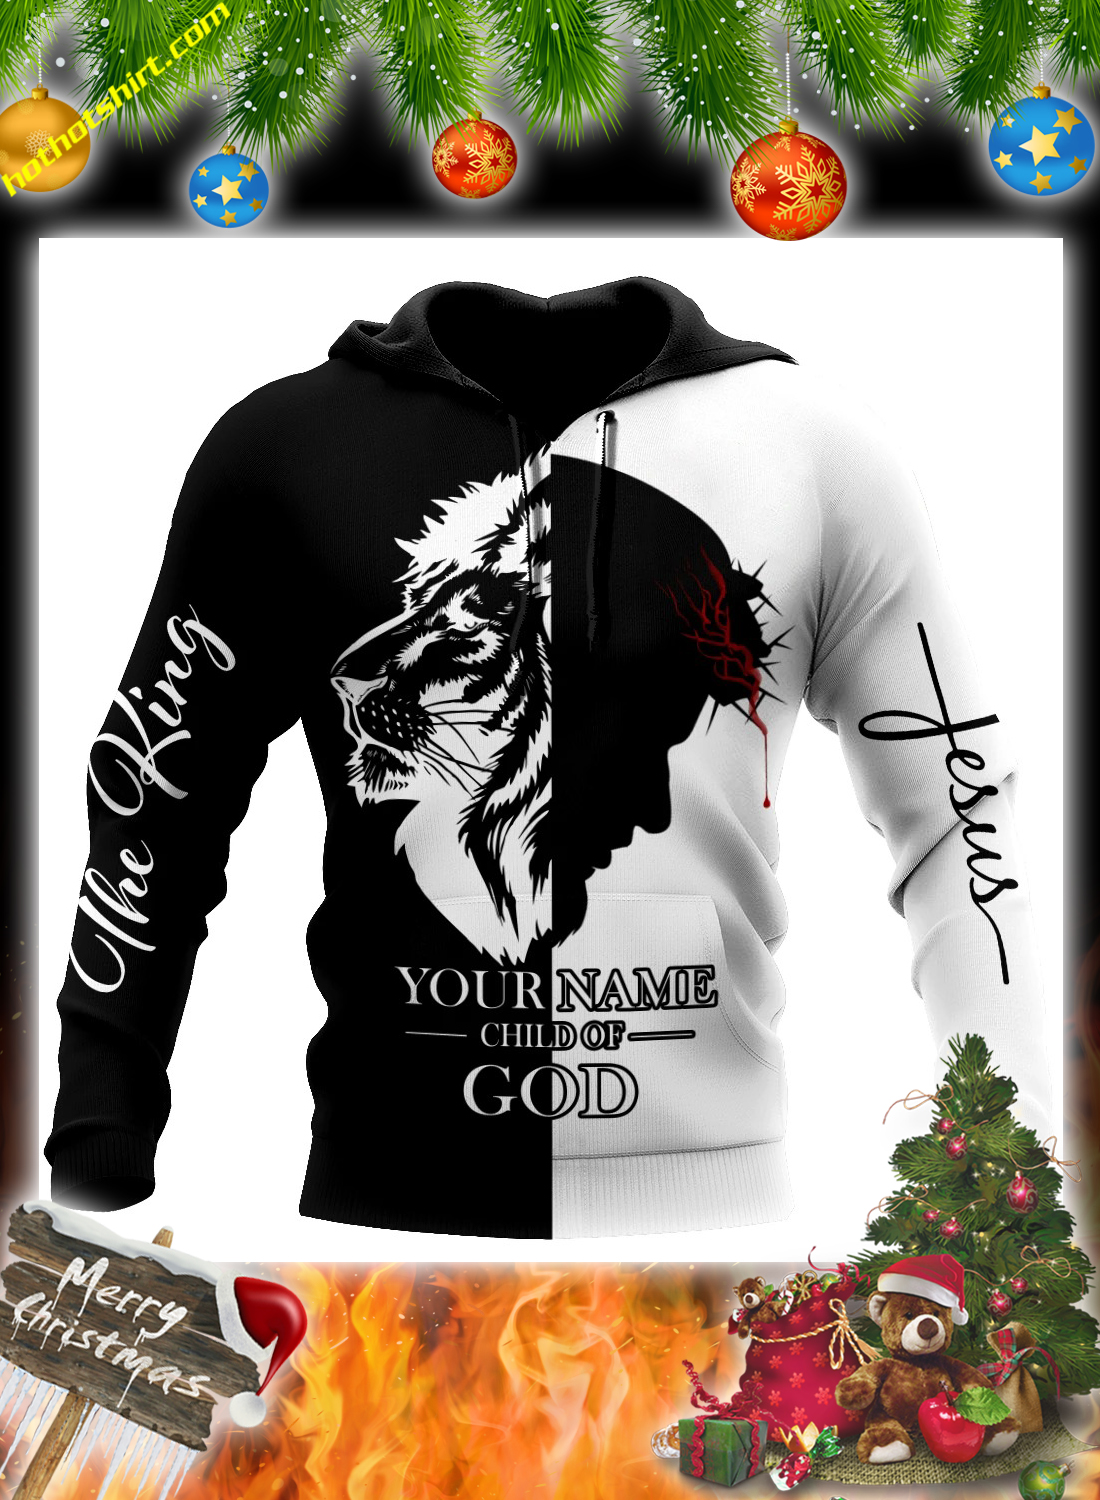 Personalized customize name Jesus the king child of god 3d hoodie and shirt